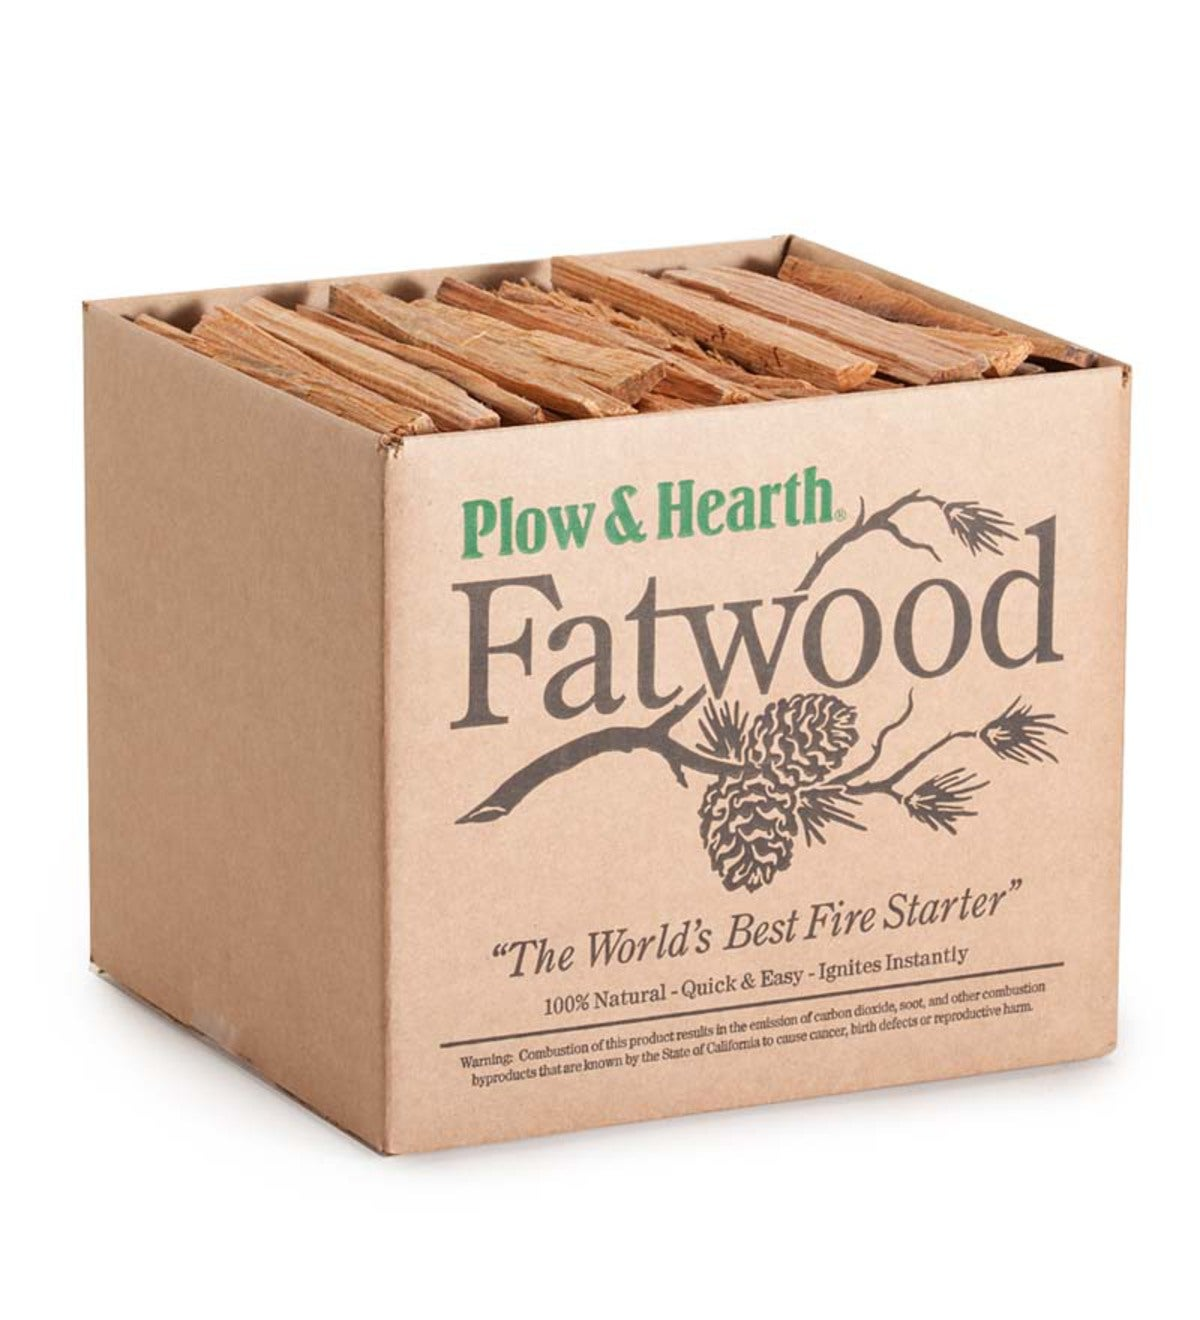 10 lb. Box Of Fatwood Kindling Fire Starter Sticks